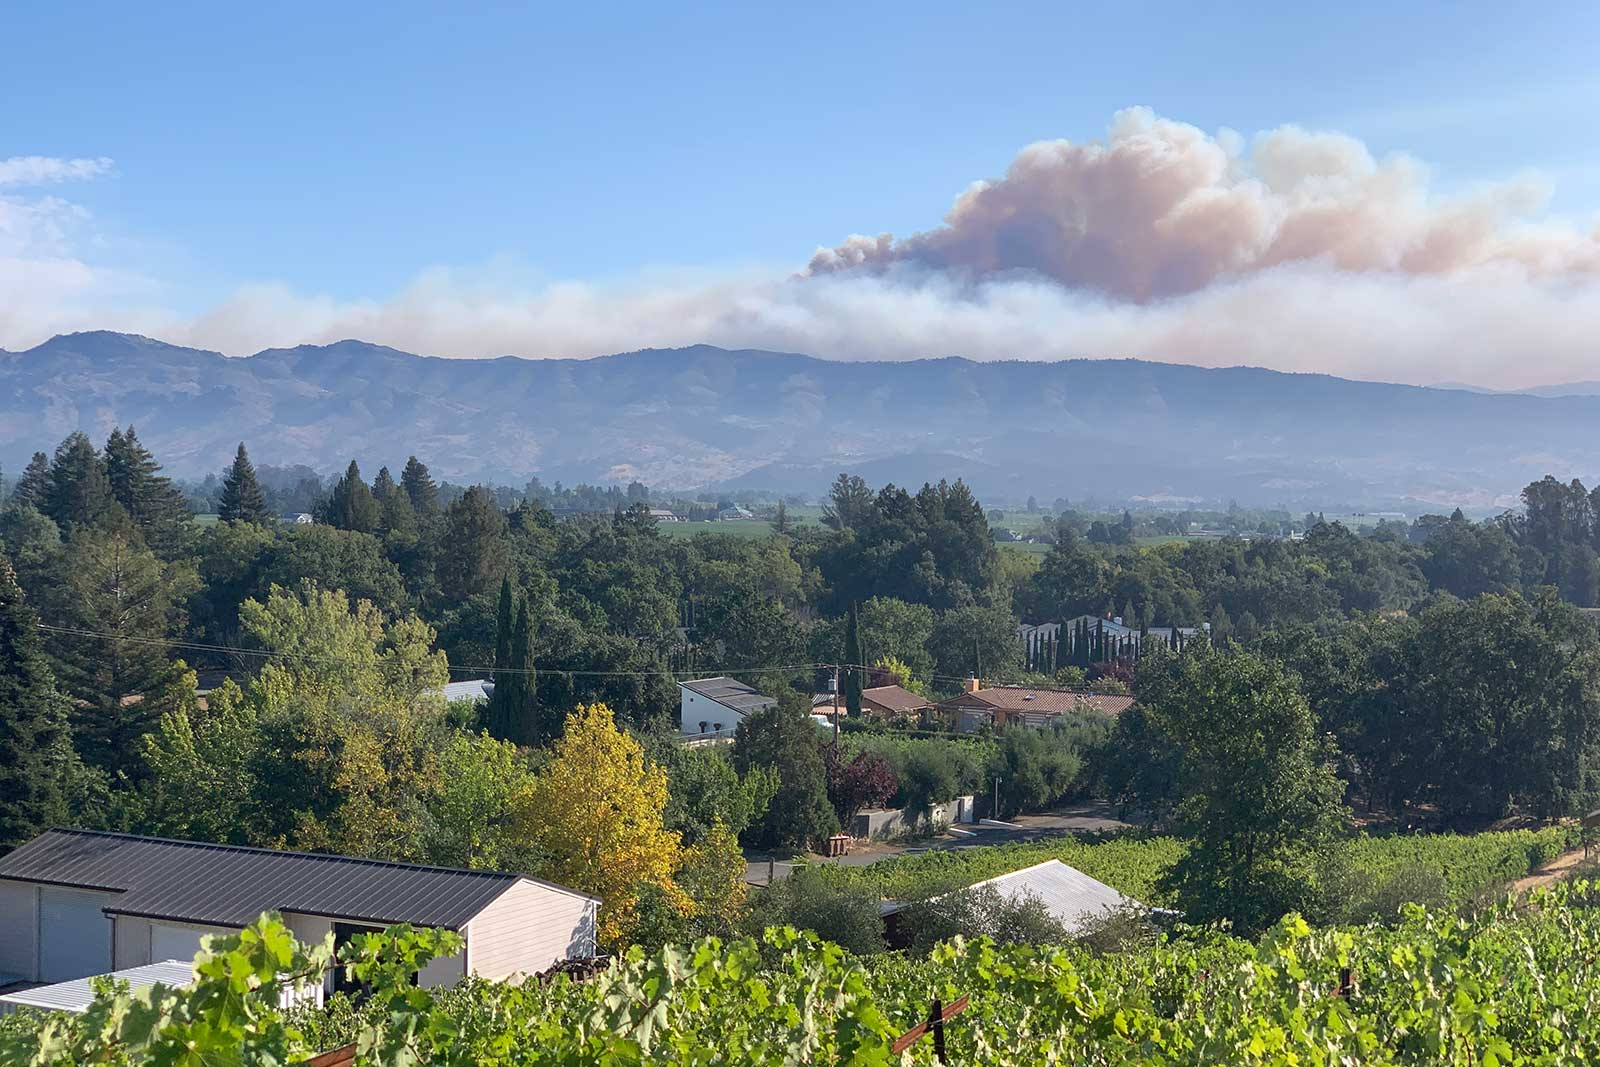 The LNU Lightning Complex Fire burns outside Napa in the late summer of 2020. ©Matthiasson Wines